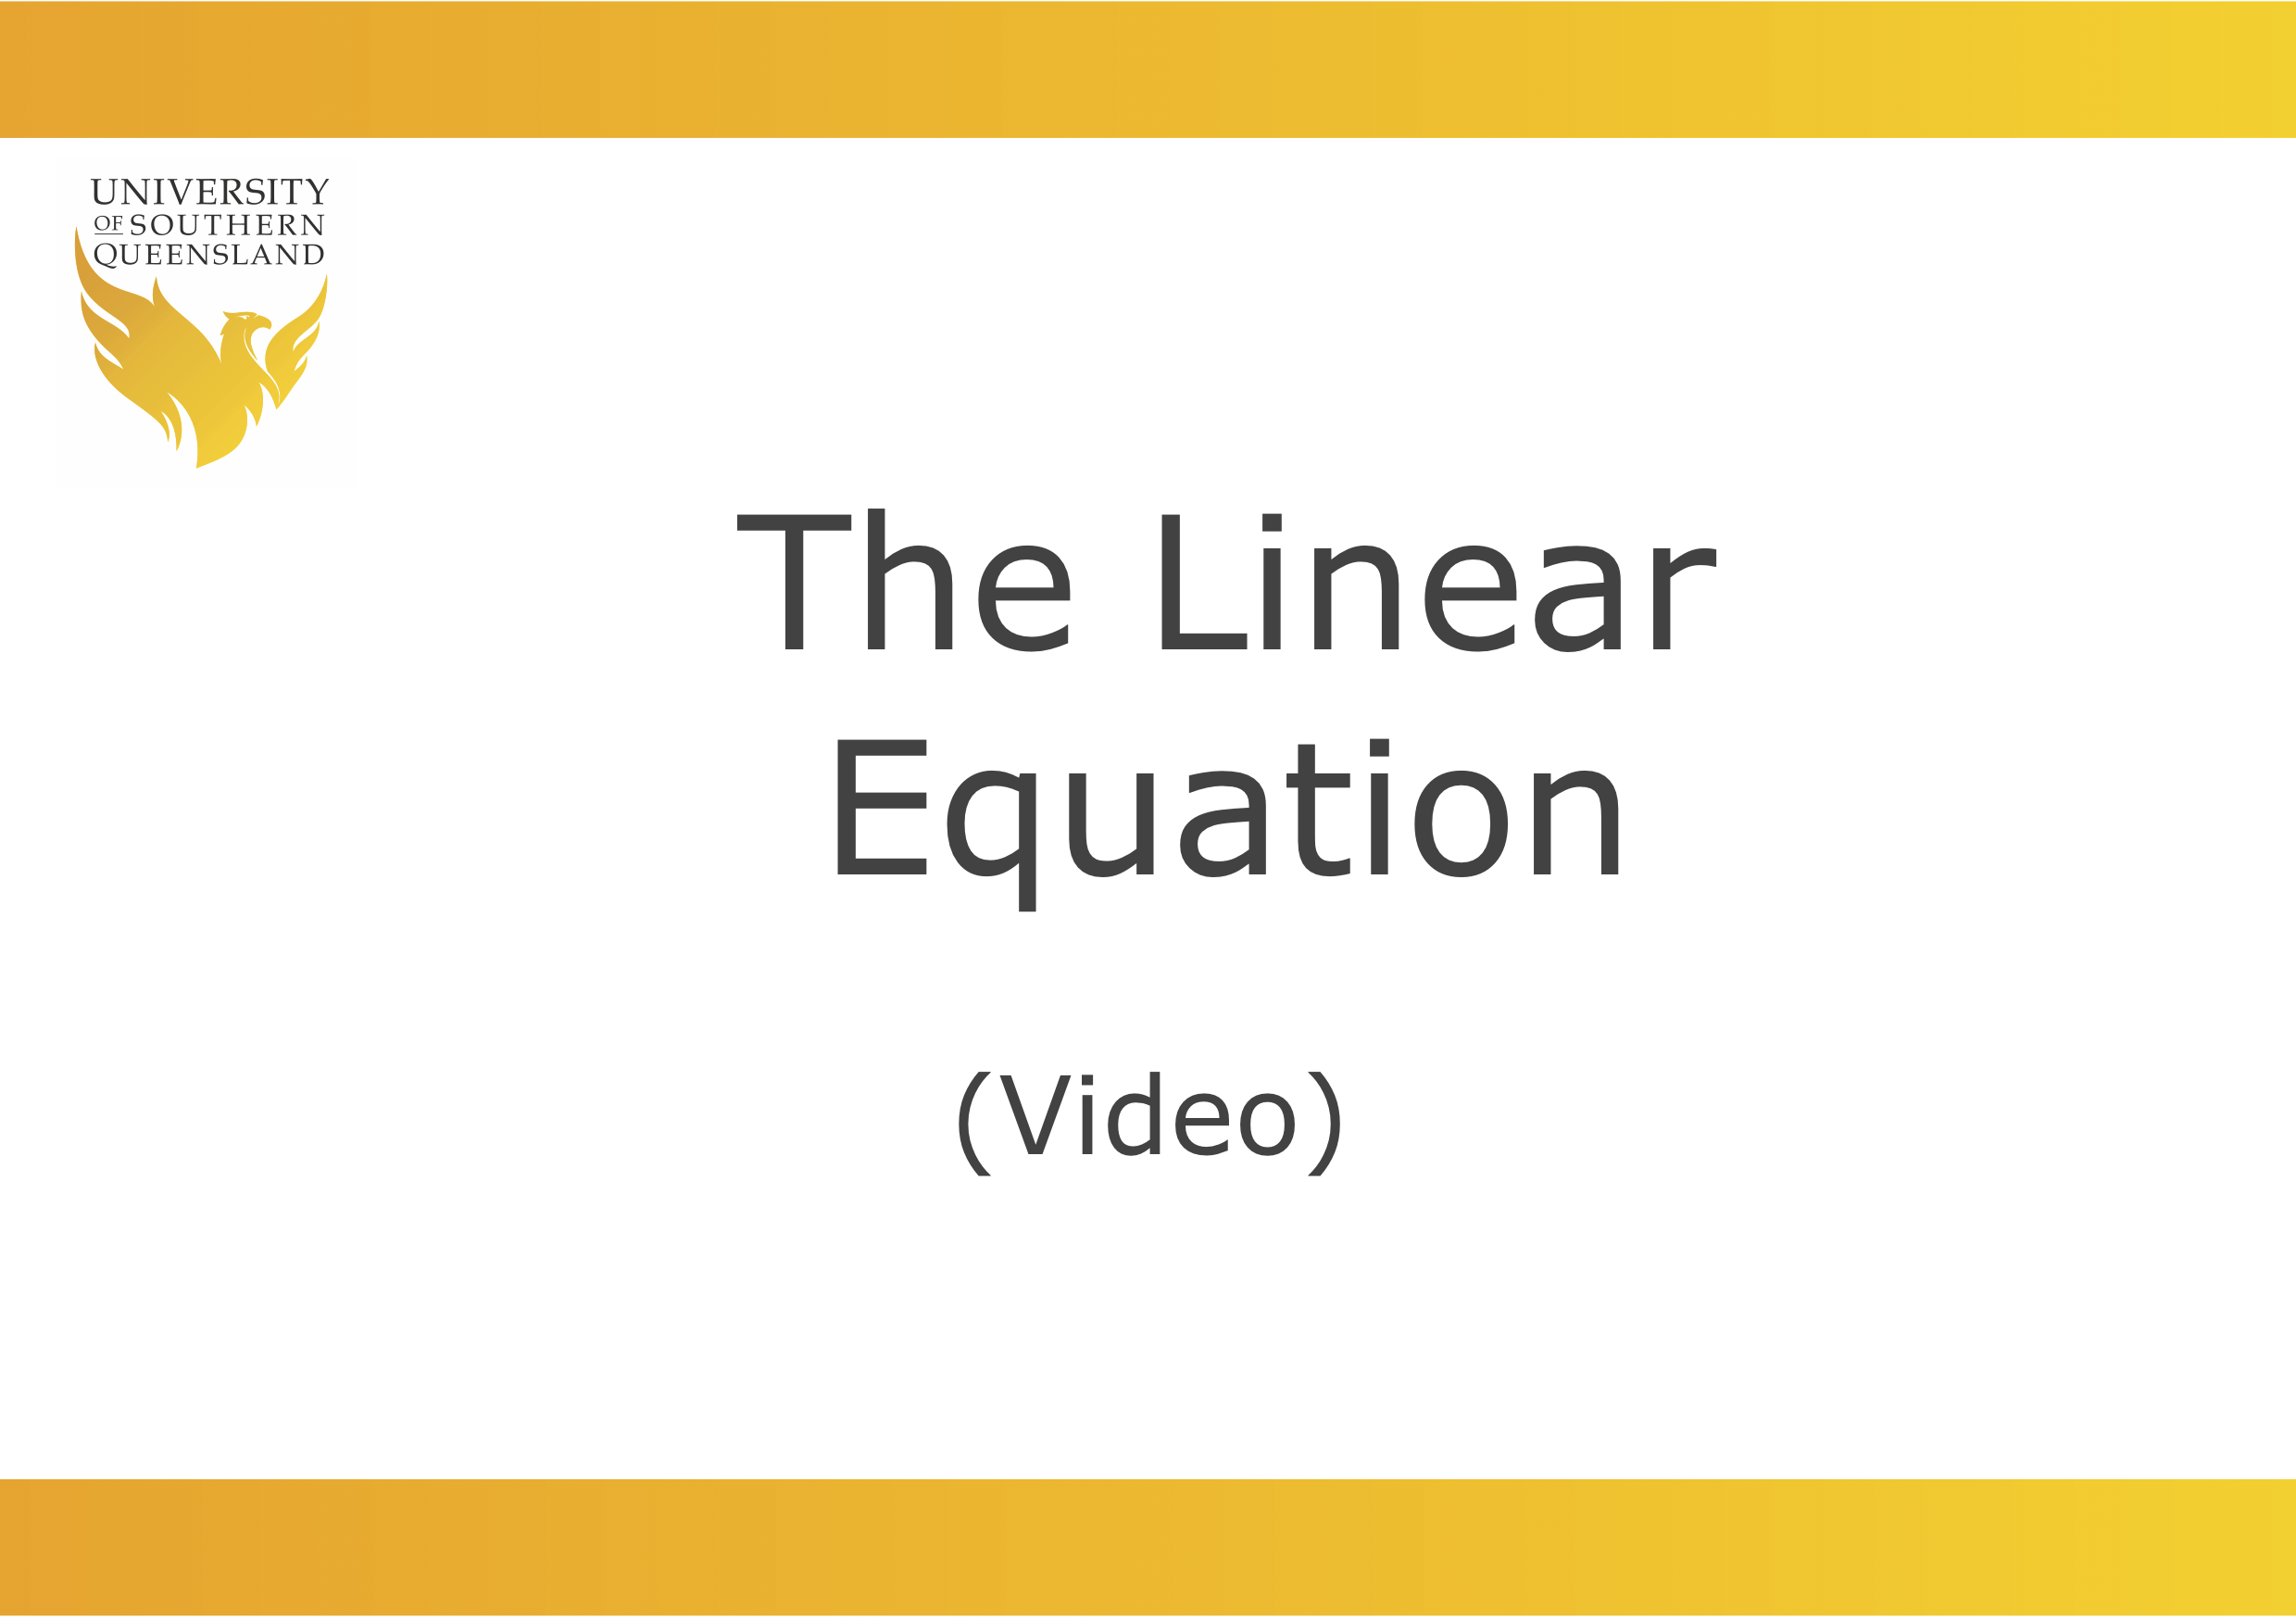 Image to play the video for the linear equation